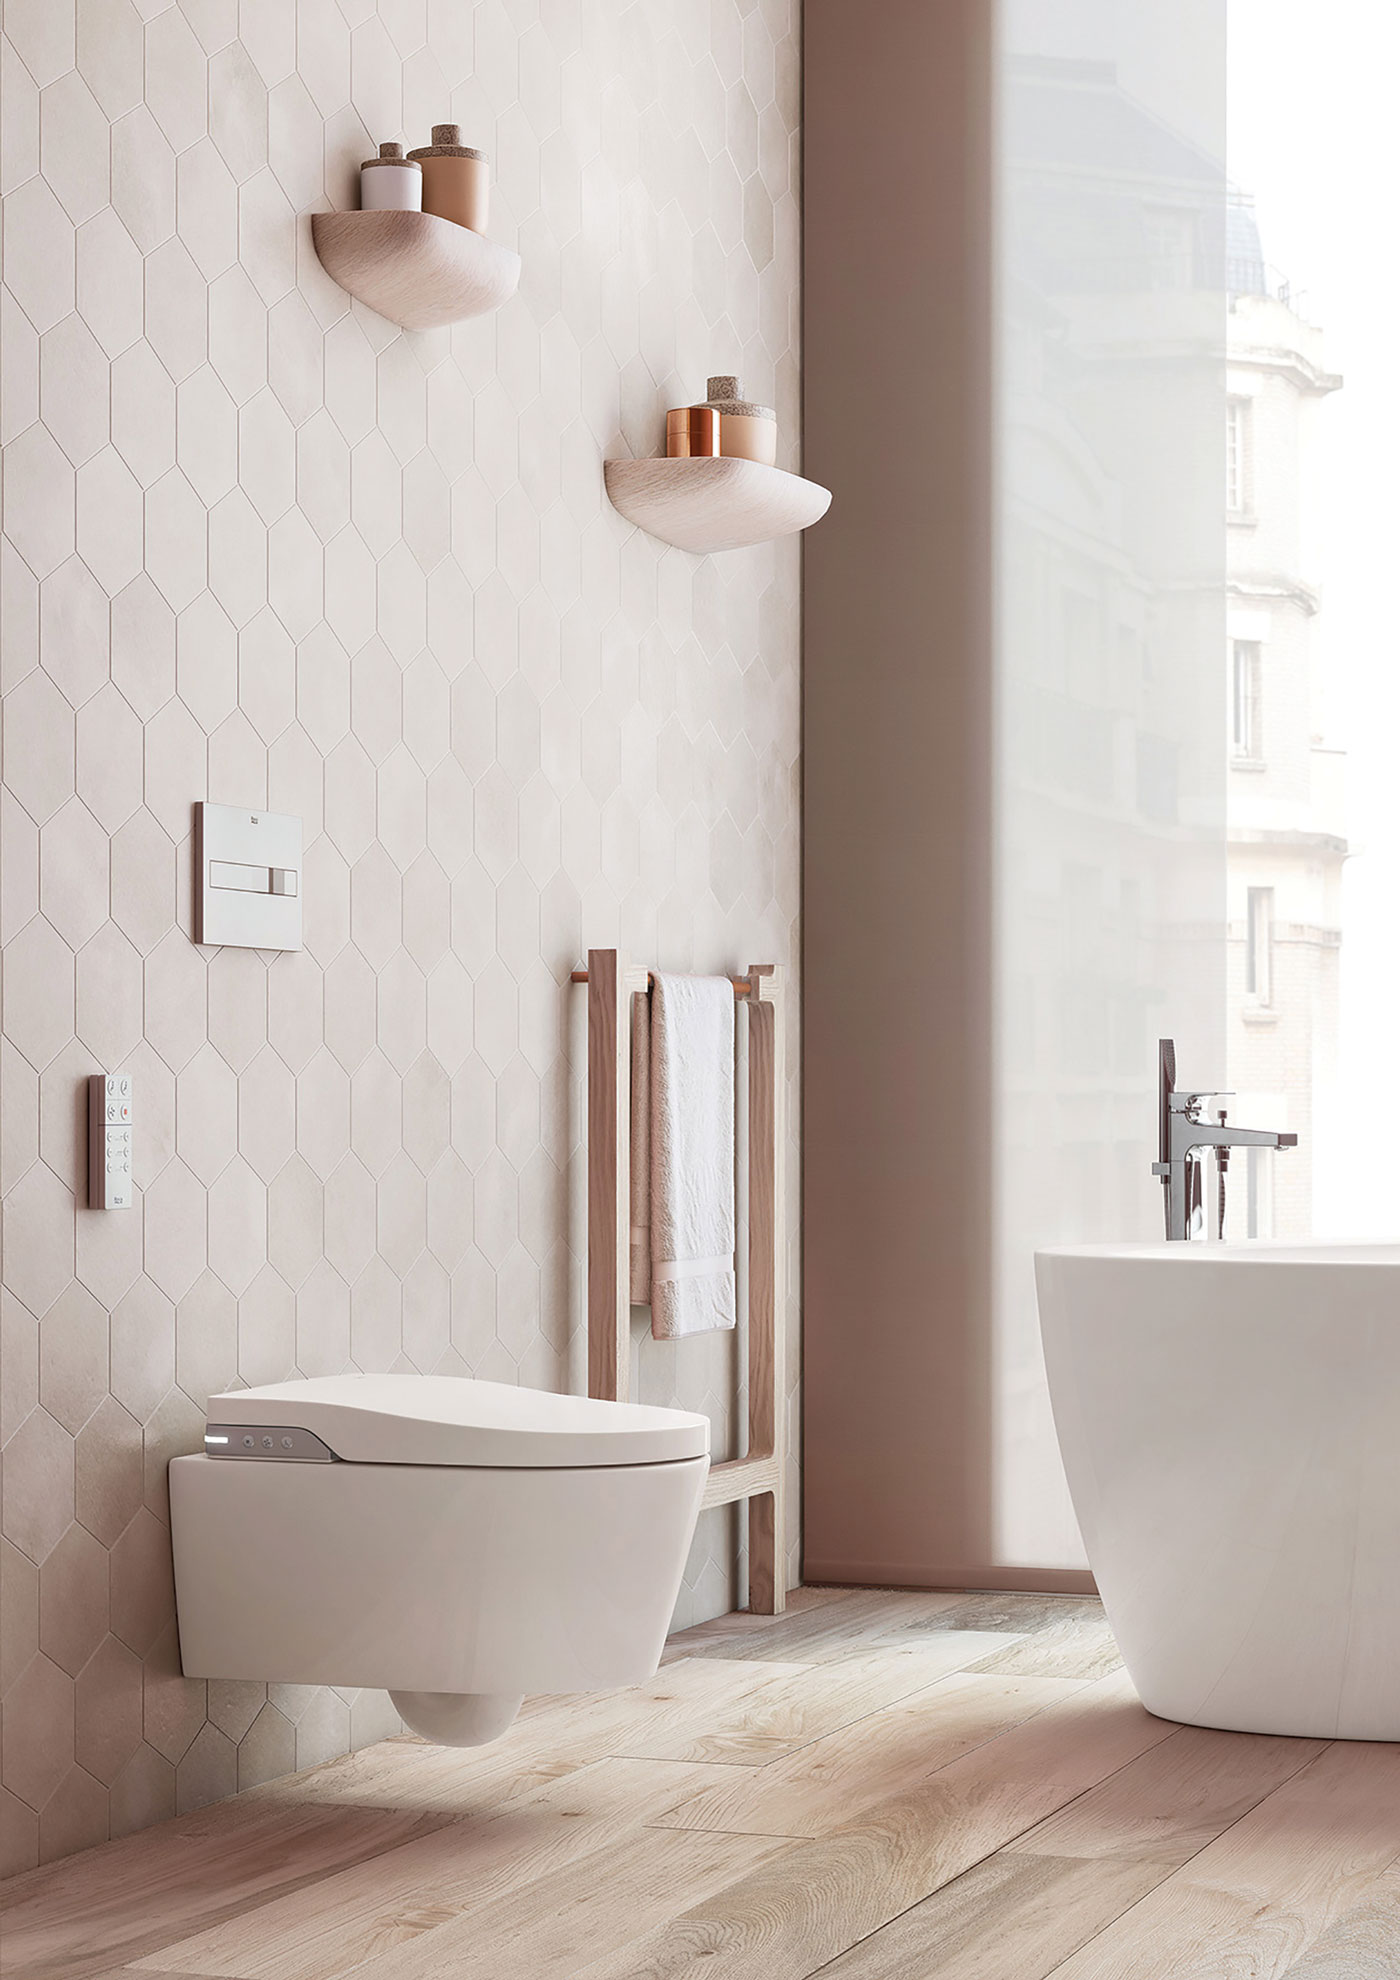 Bathrooms sleek sanctuary home lifestyle magazine - Puya marbella ...